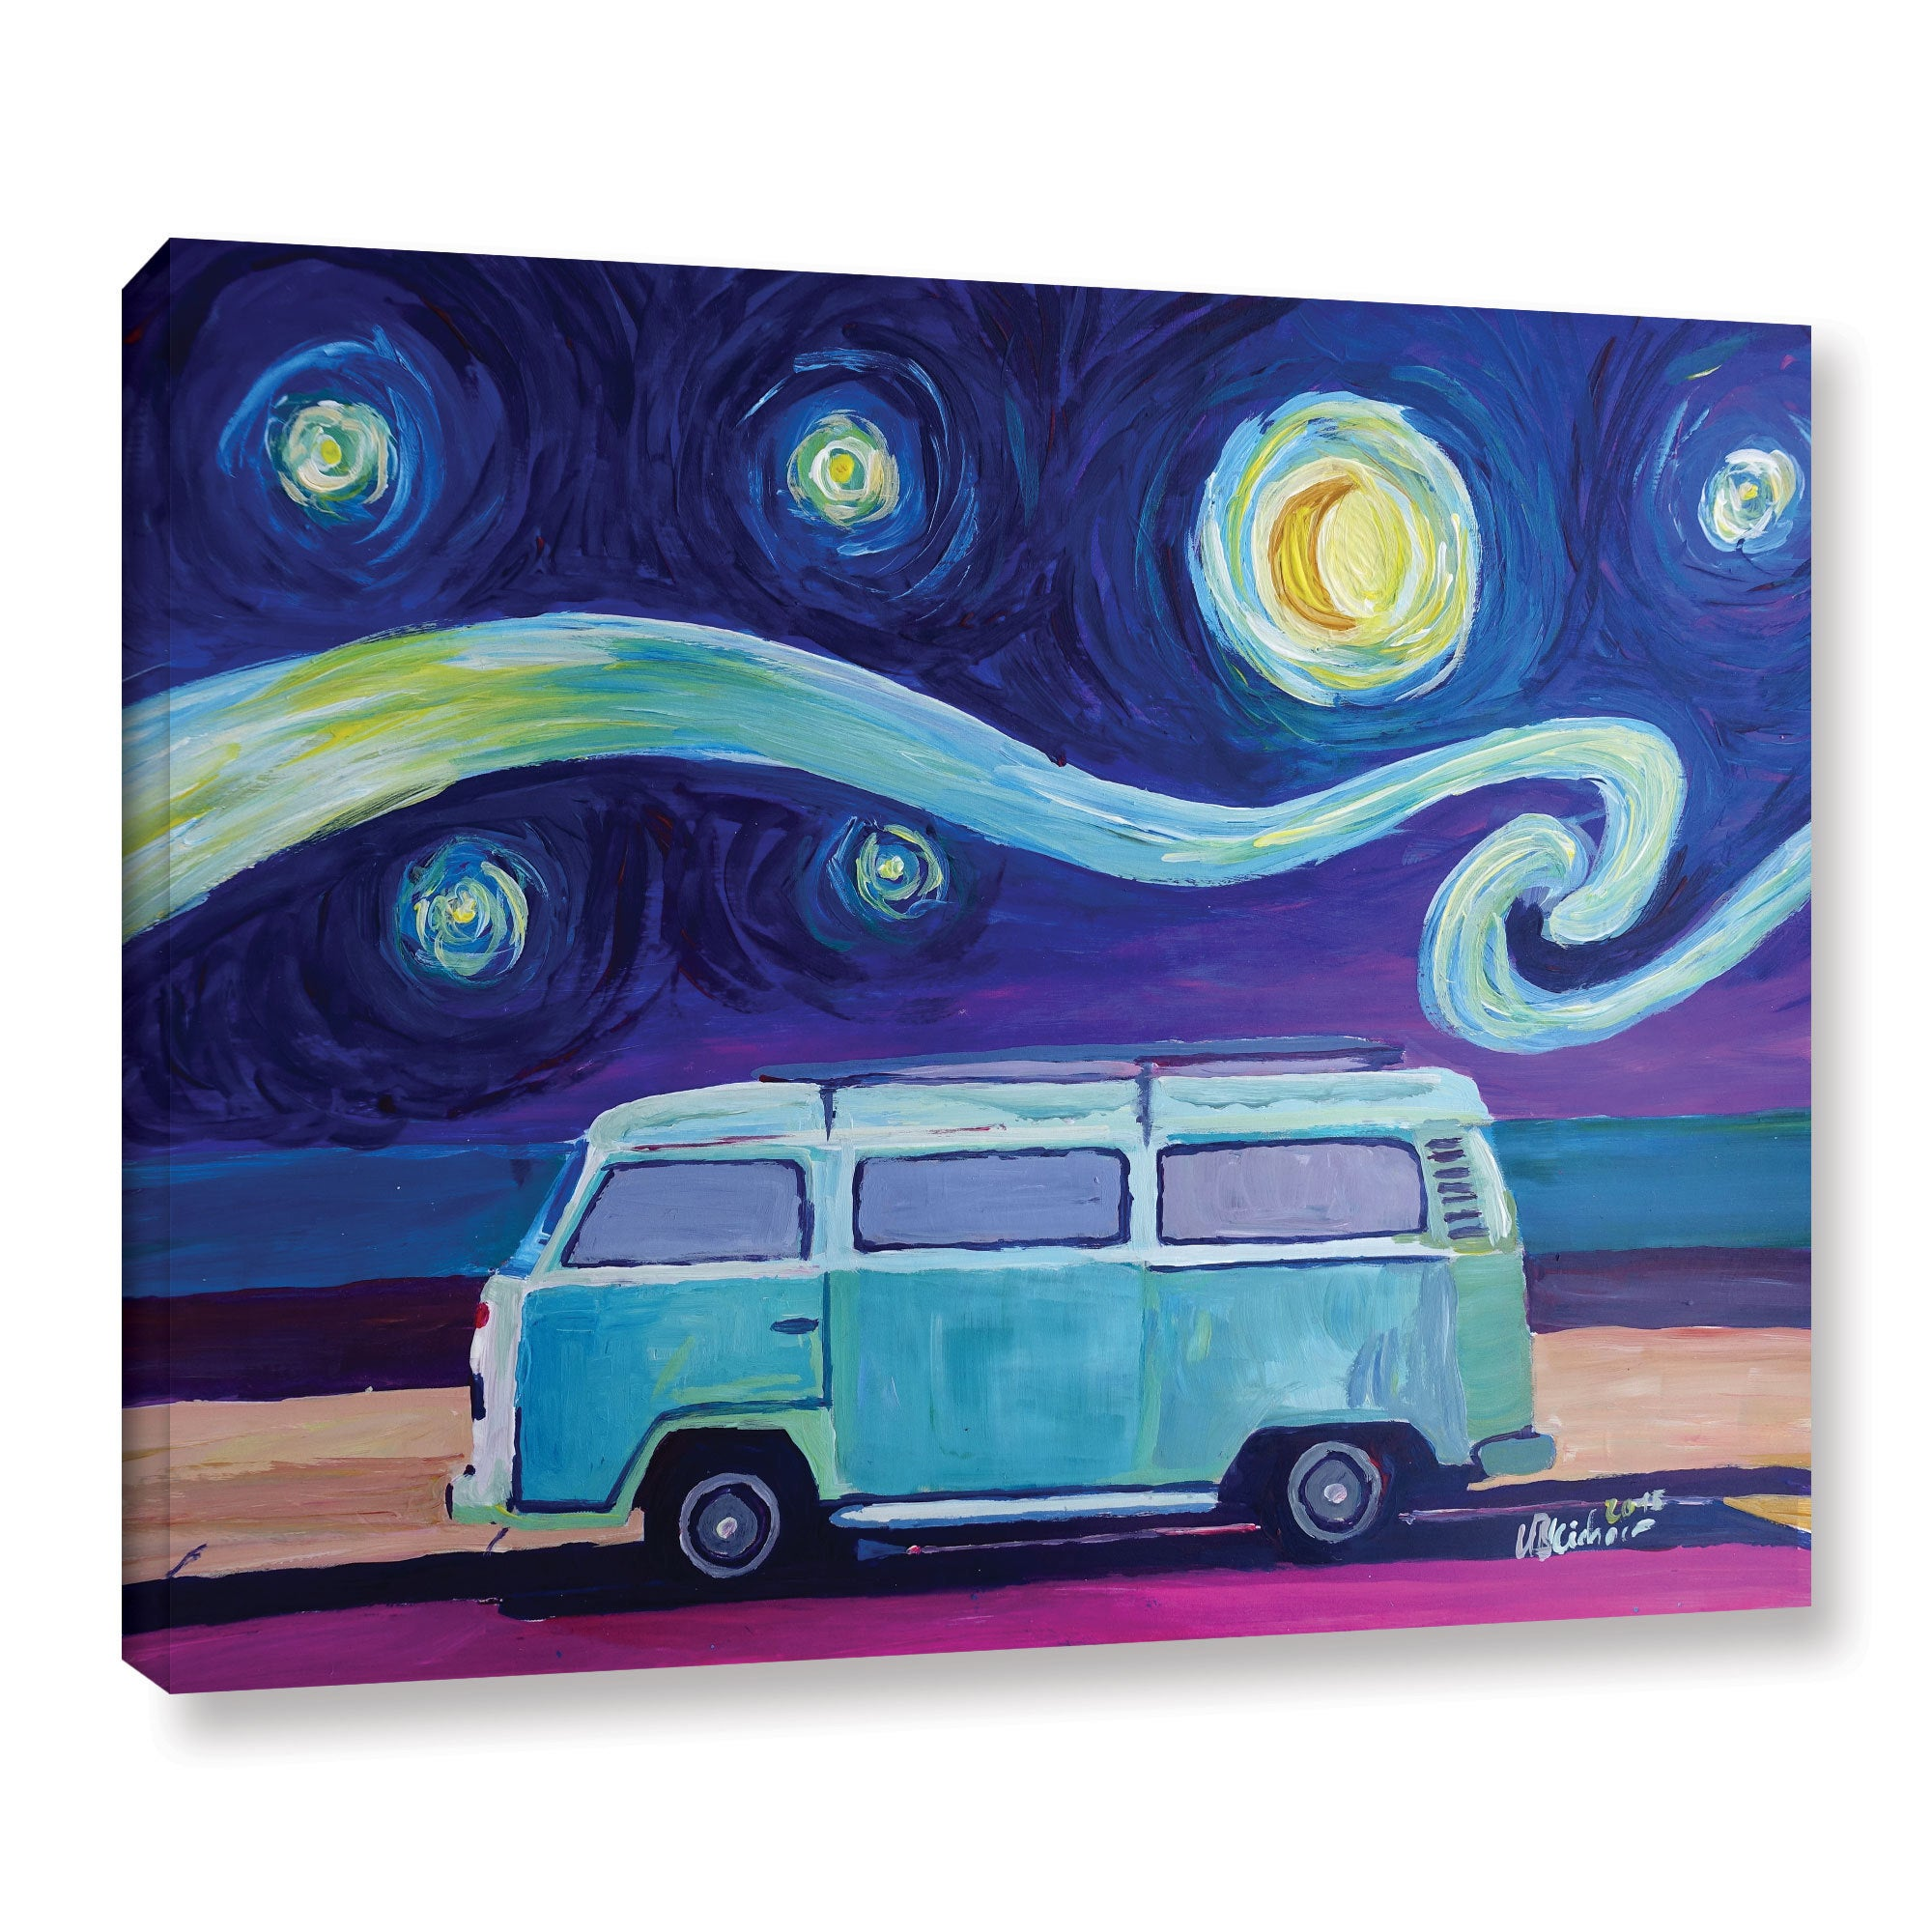 Marcus Martina Bleichner S The Surf Bus Series The Starry Night Bulli Gallery Wrapped Canvas Overstock 11851239